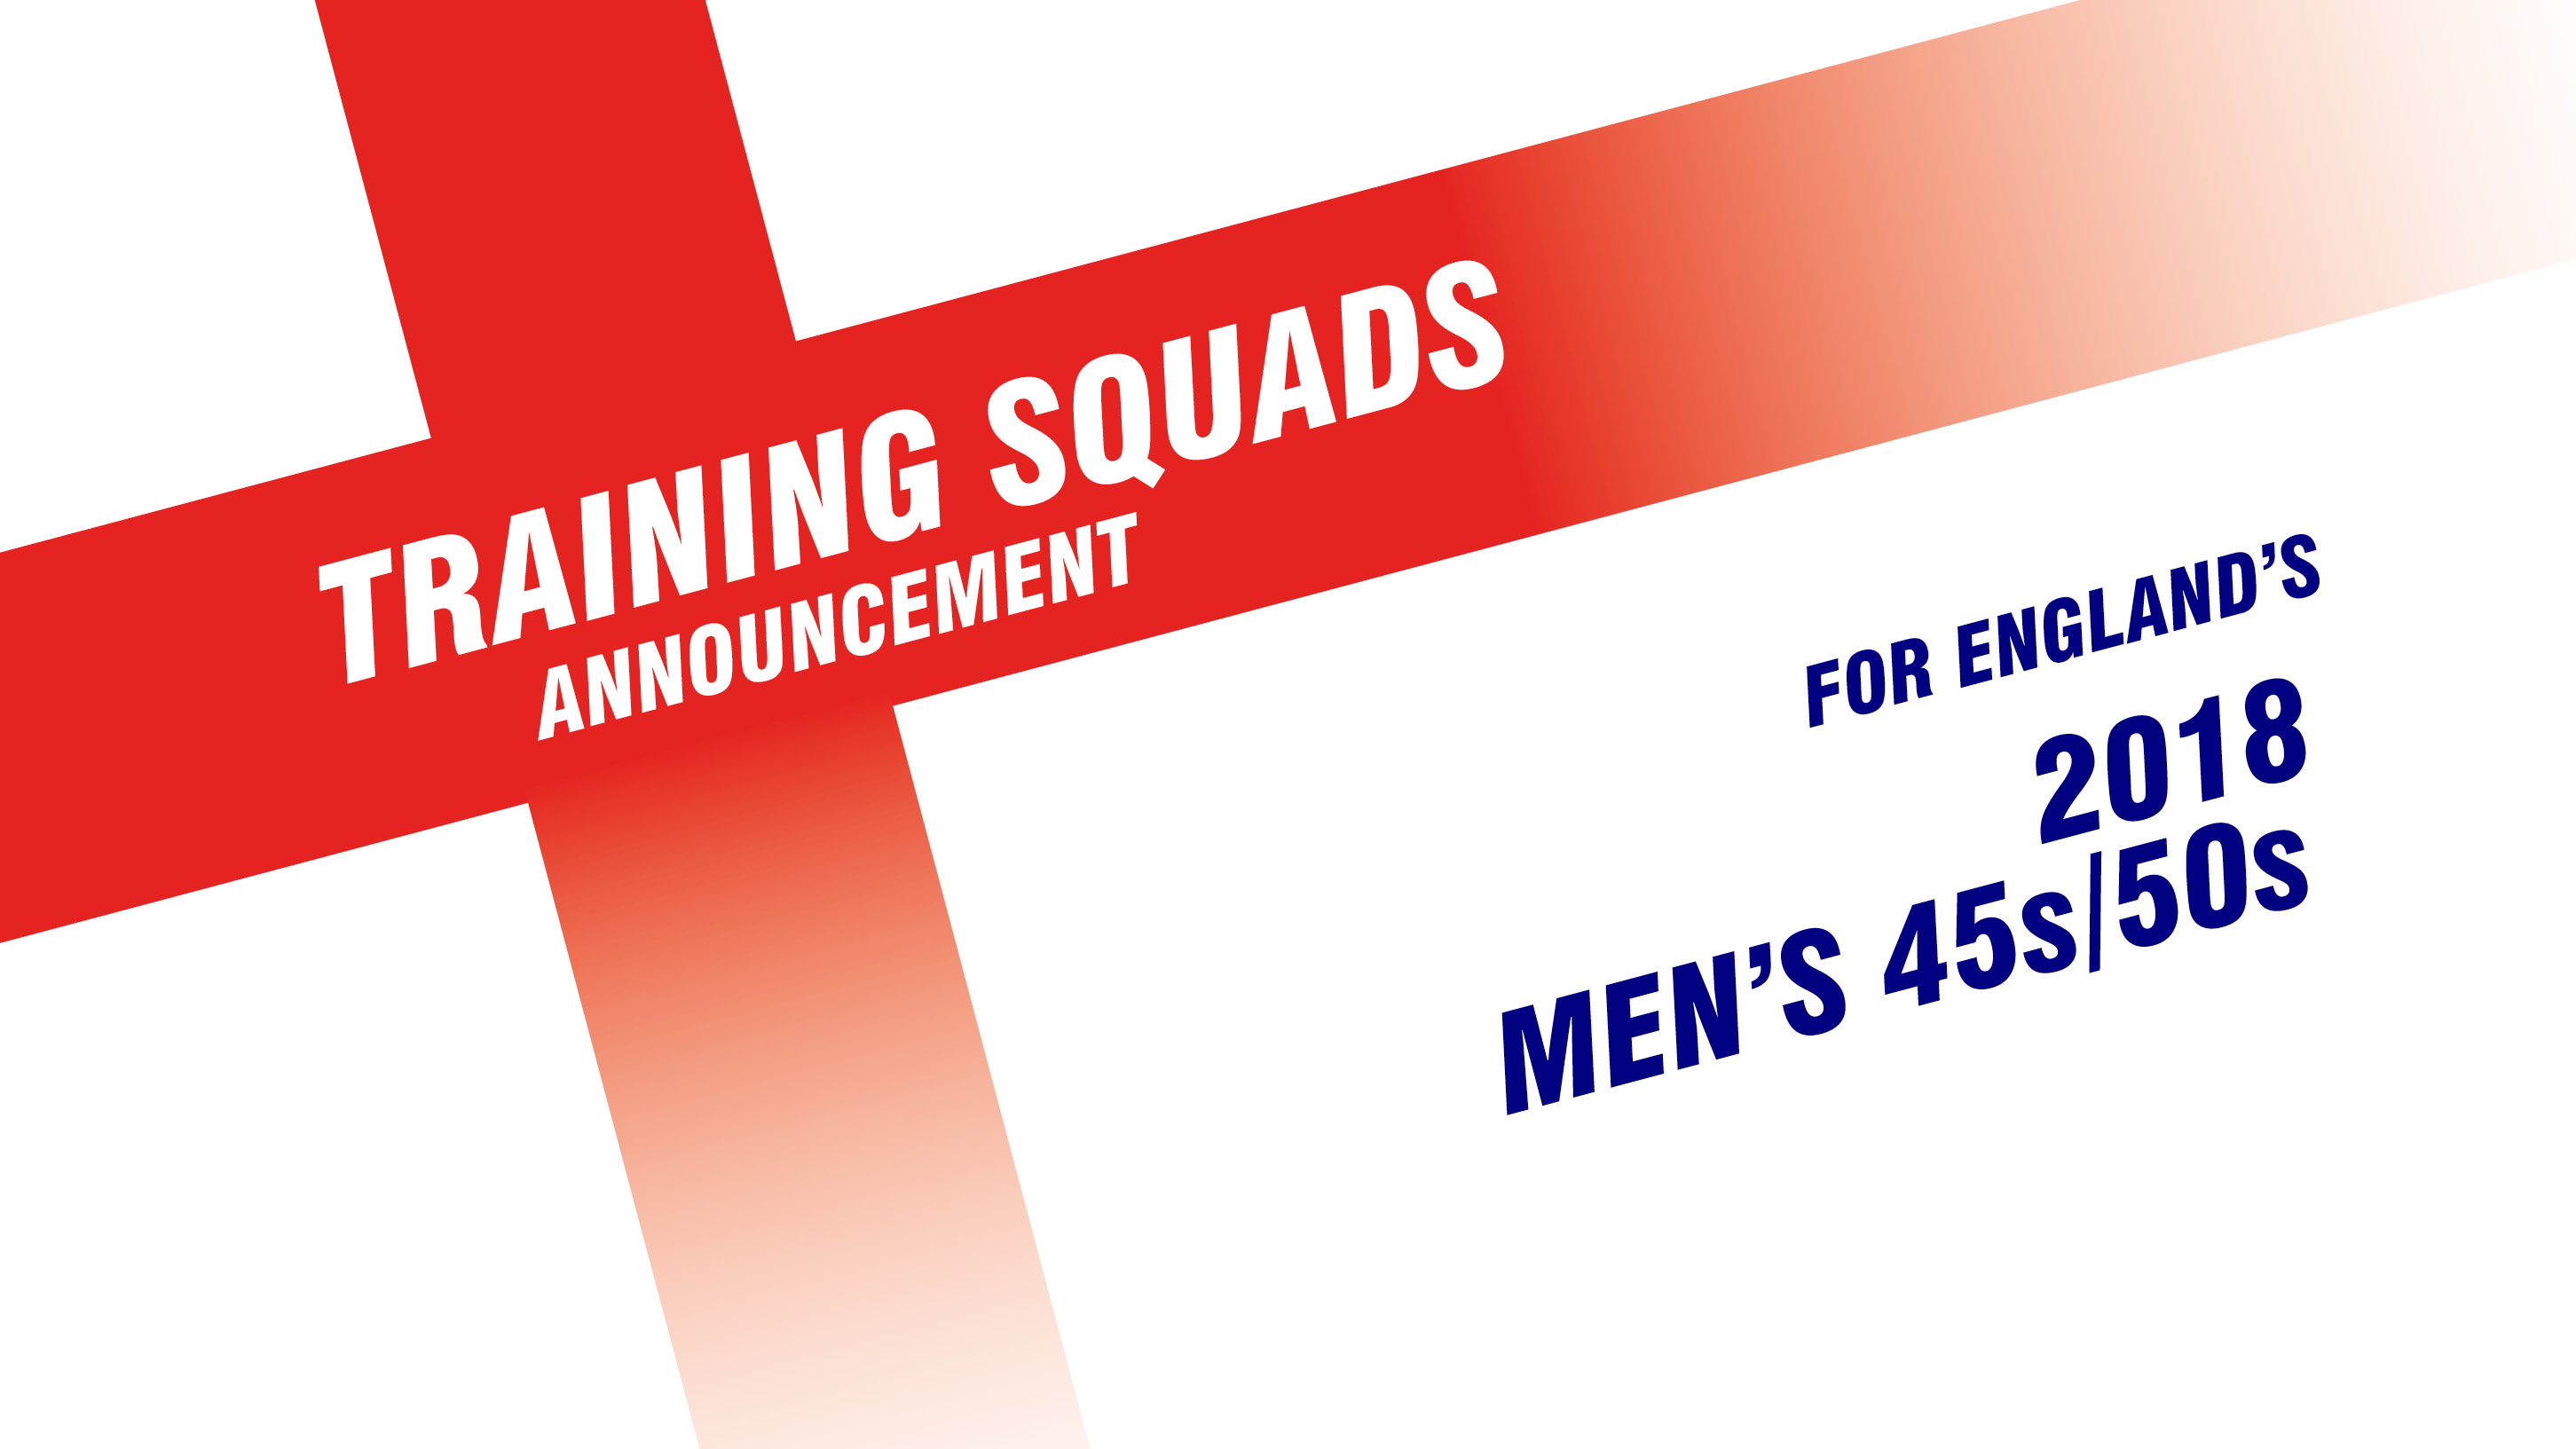 Men's 45s/50s High Performance Training Squad announced